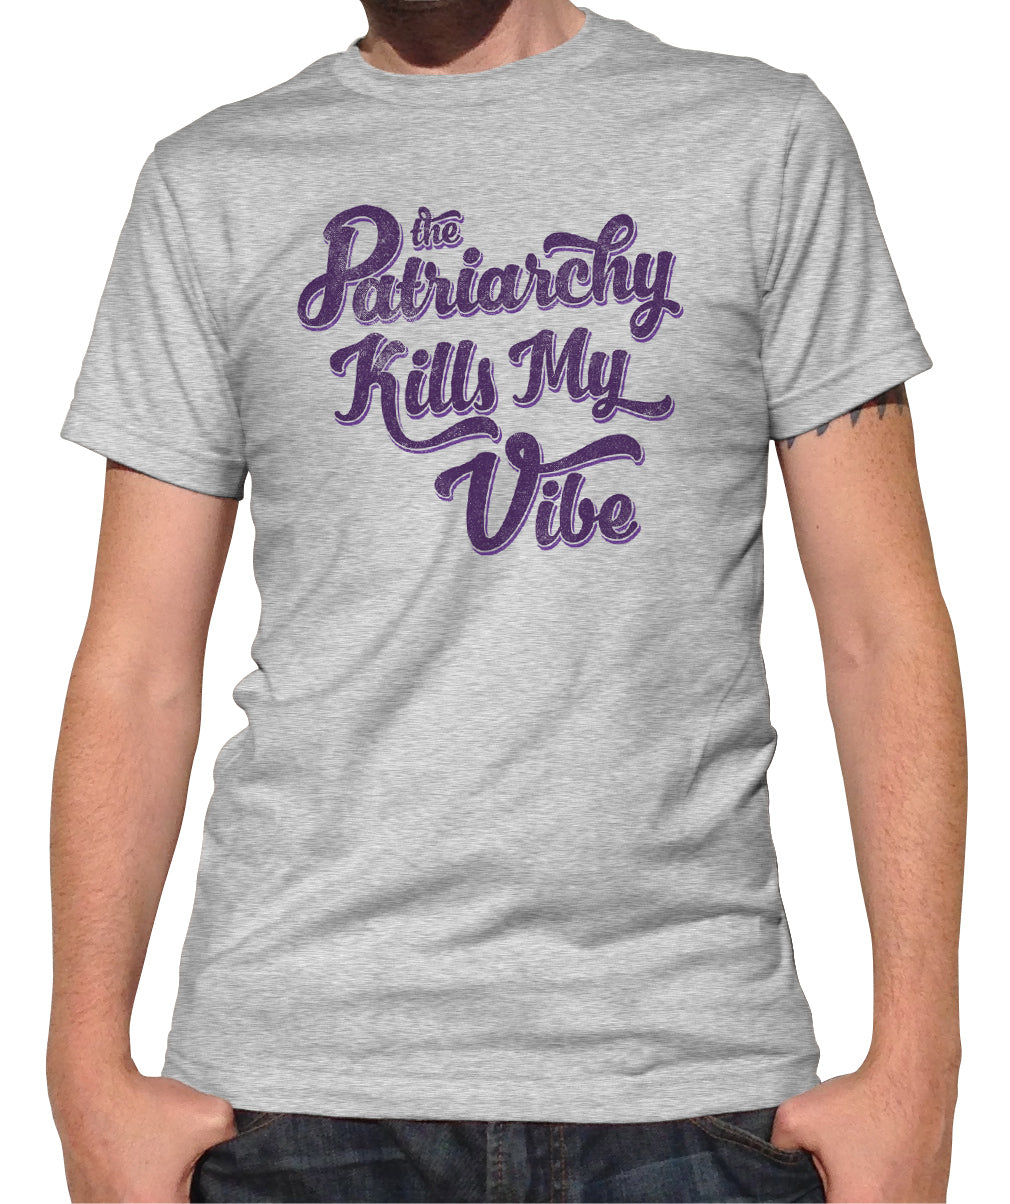 Men's The Patriarchy Kills My Vibe Feminist T-Shirt - Feminism